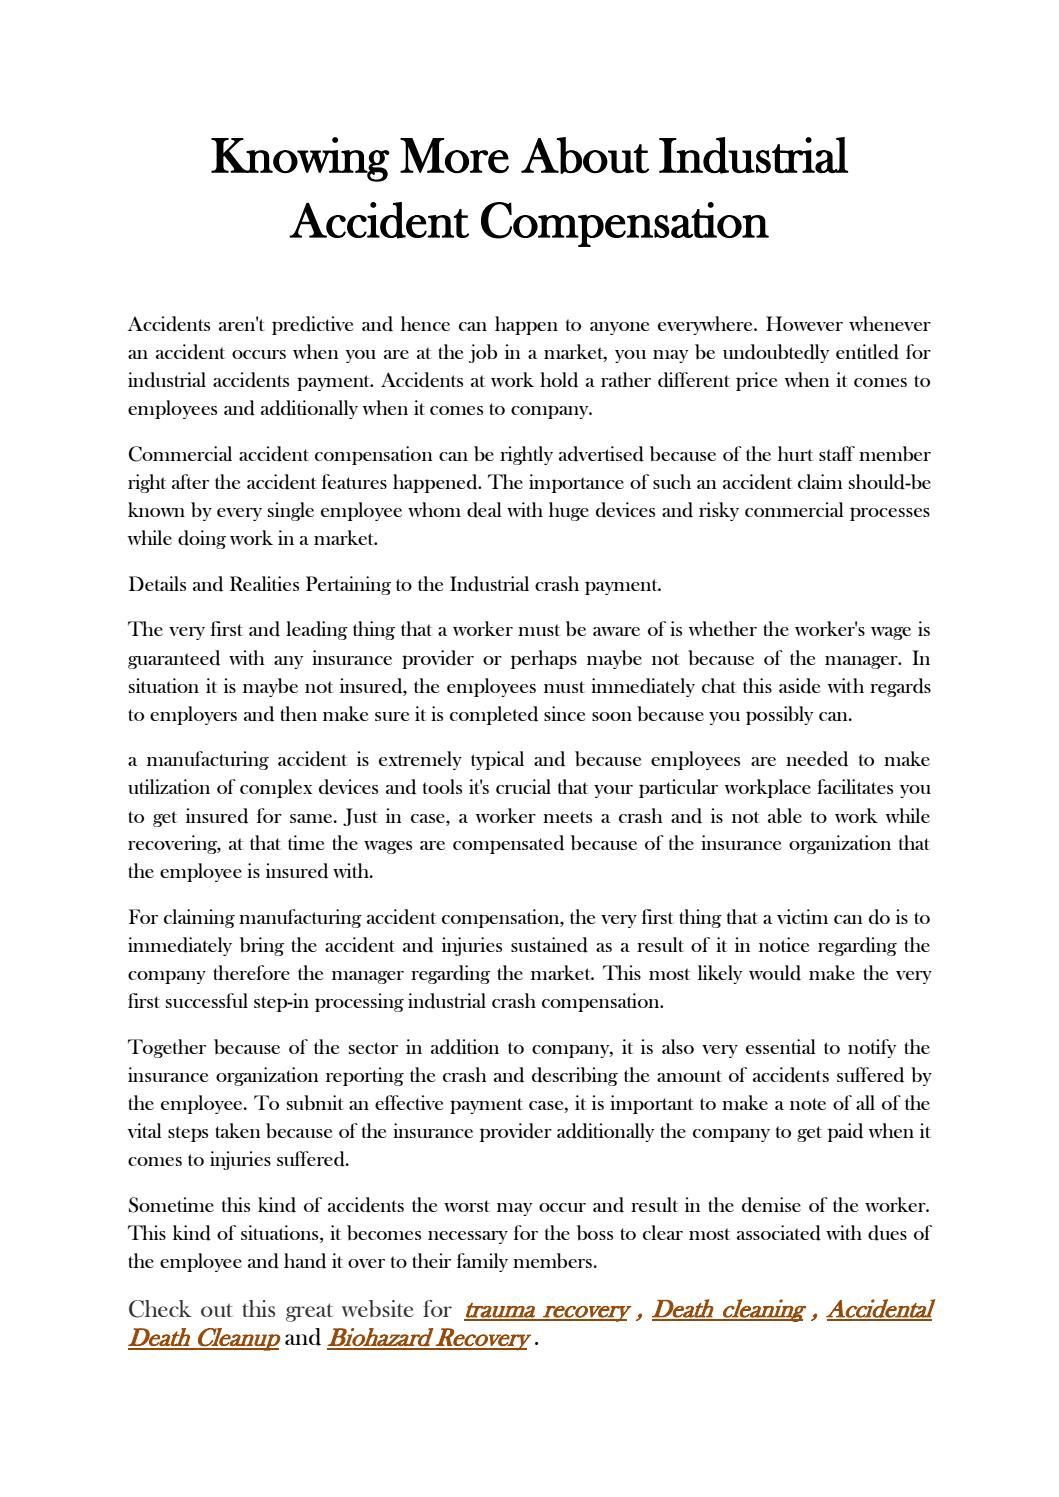 Accidental death cleanup by Abdur - issuu